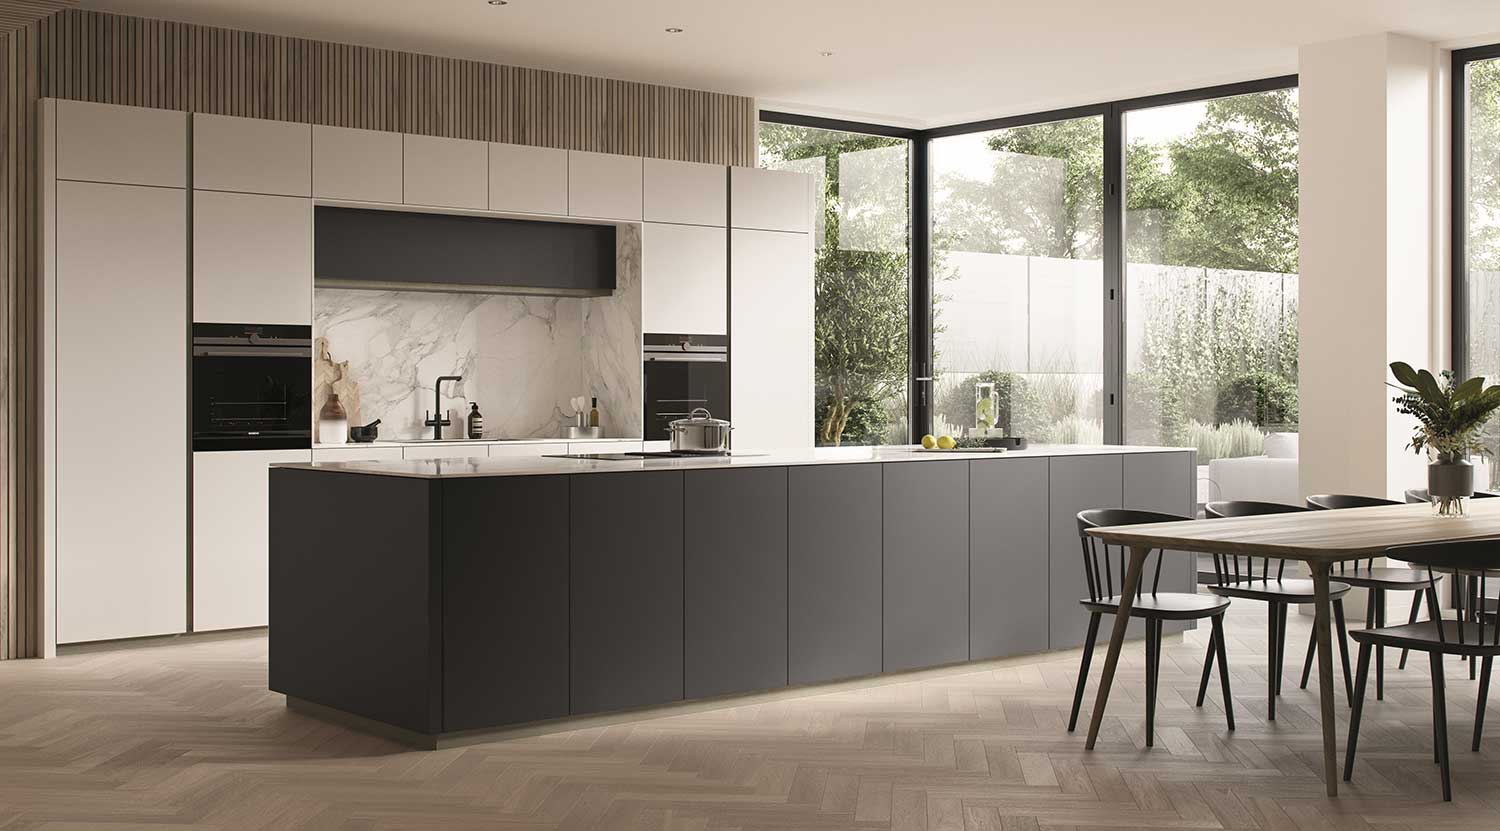 Handleless kitchen Q-Line shown in Bianca Satin Face Grafite Polished Face